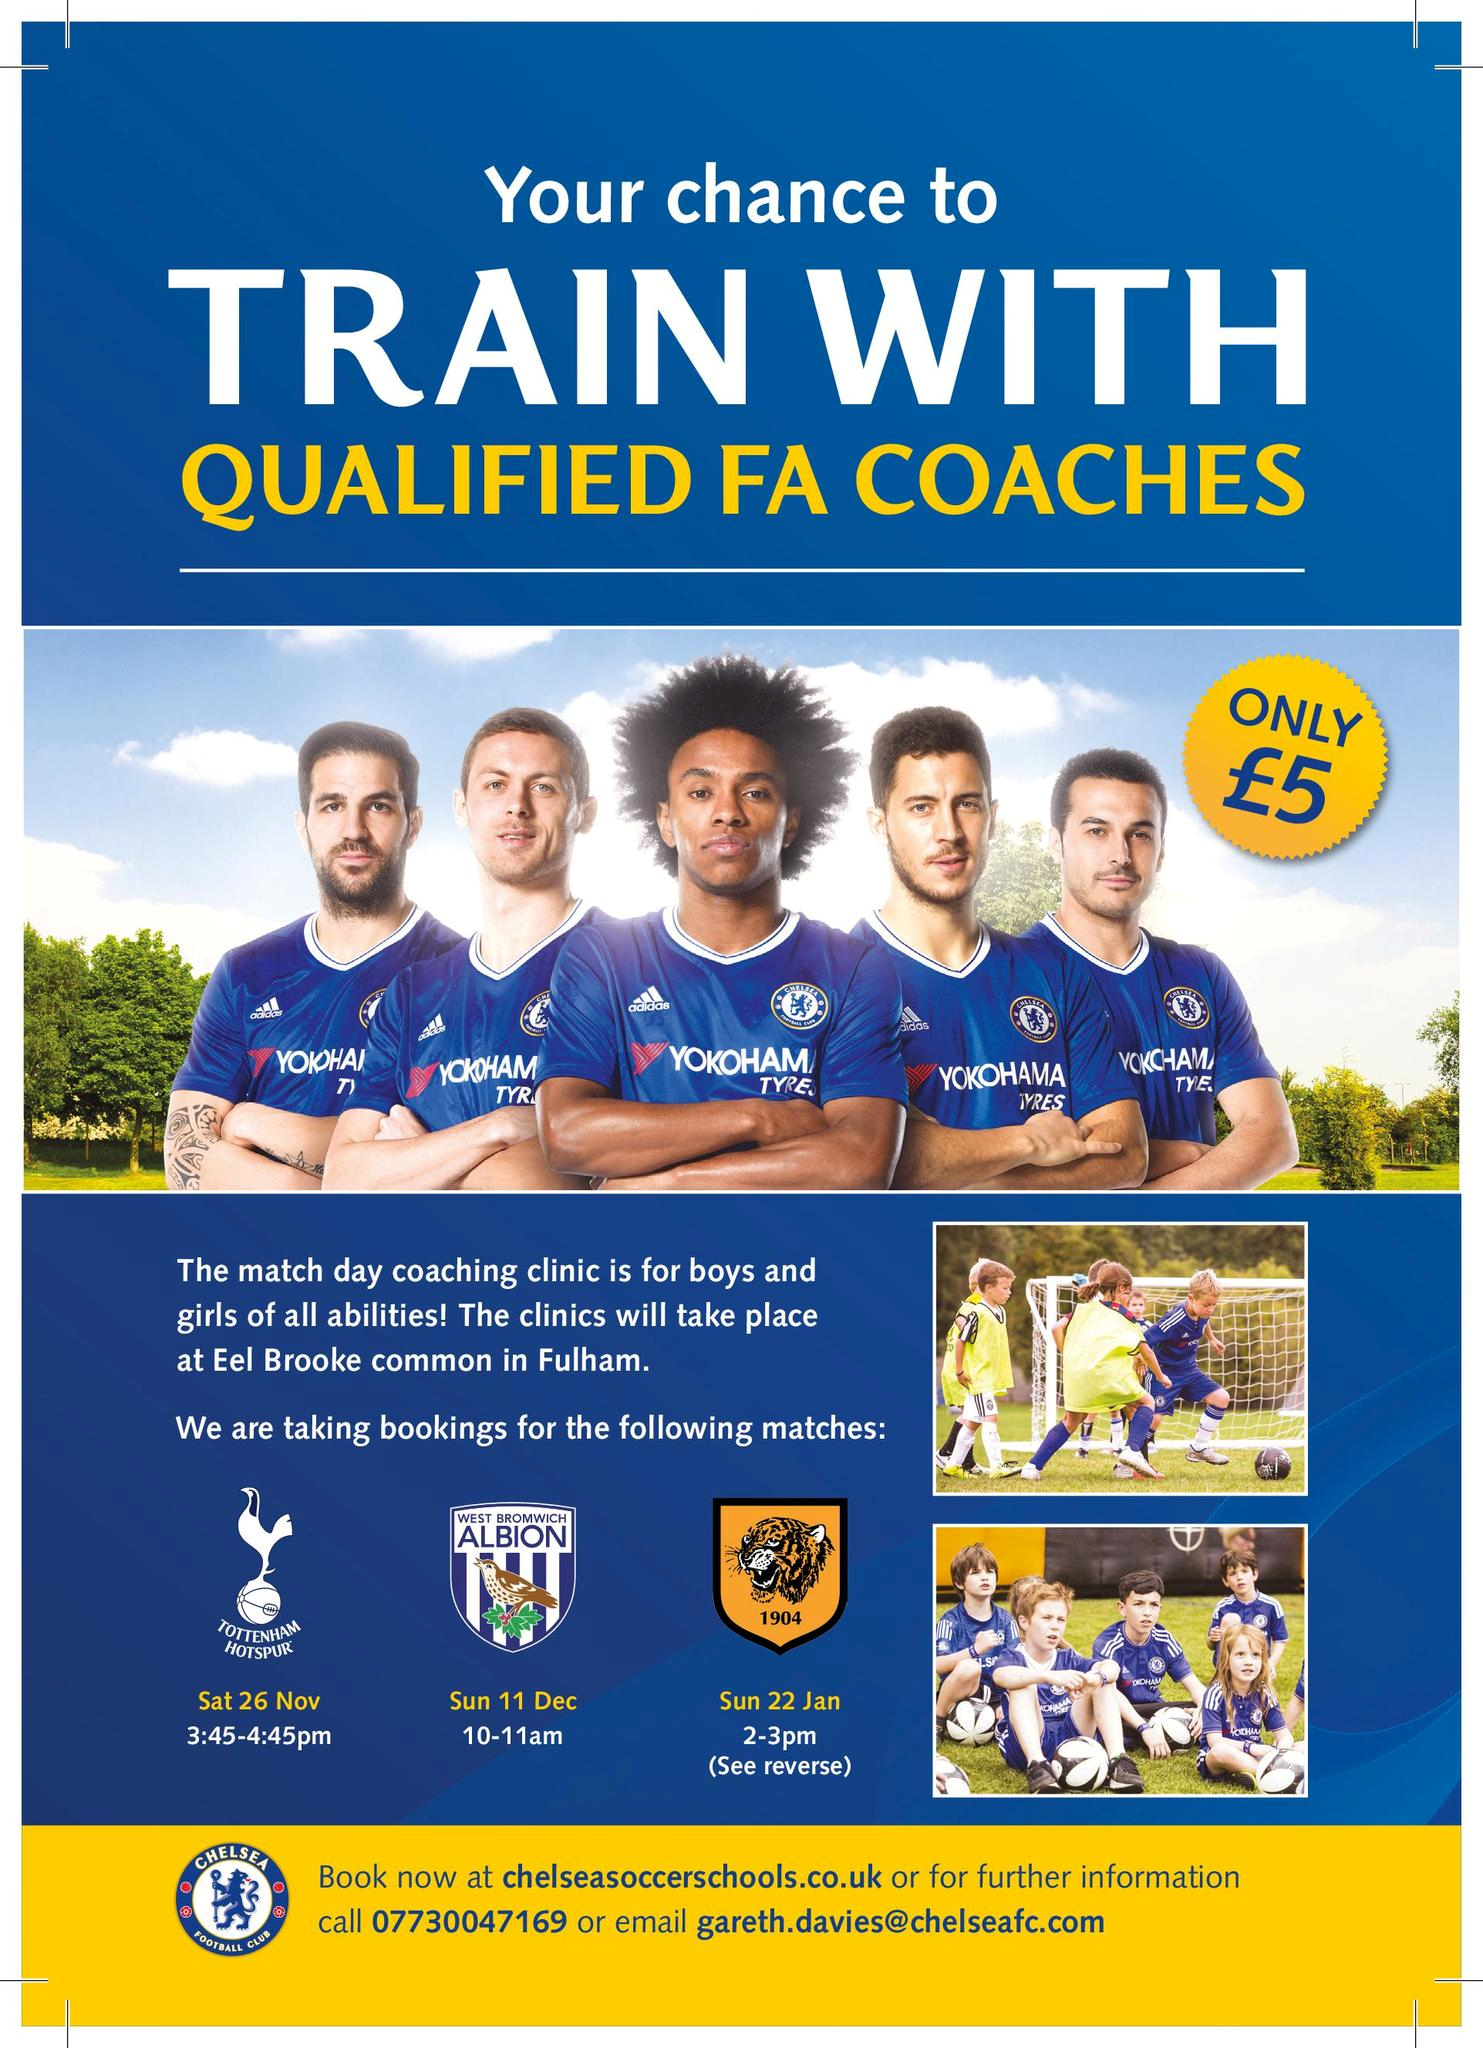 Here is a fantastic opportunity for all our football stars! Please book your place using the contact details above.